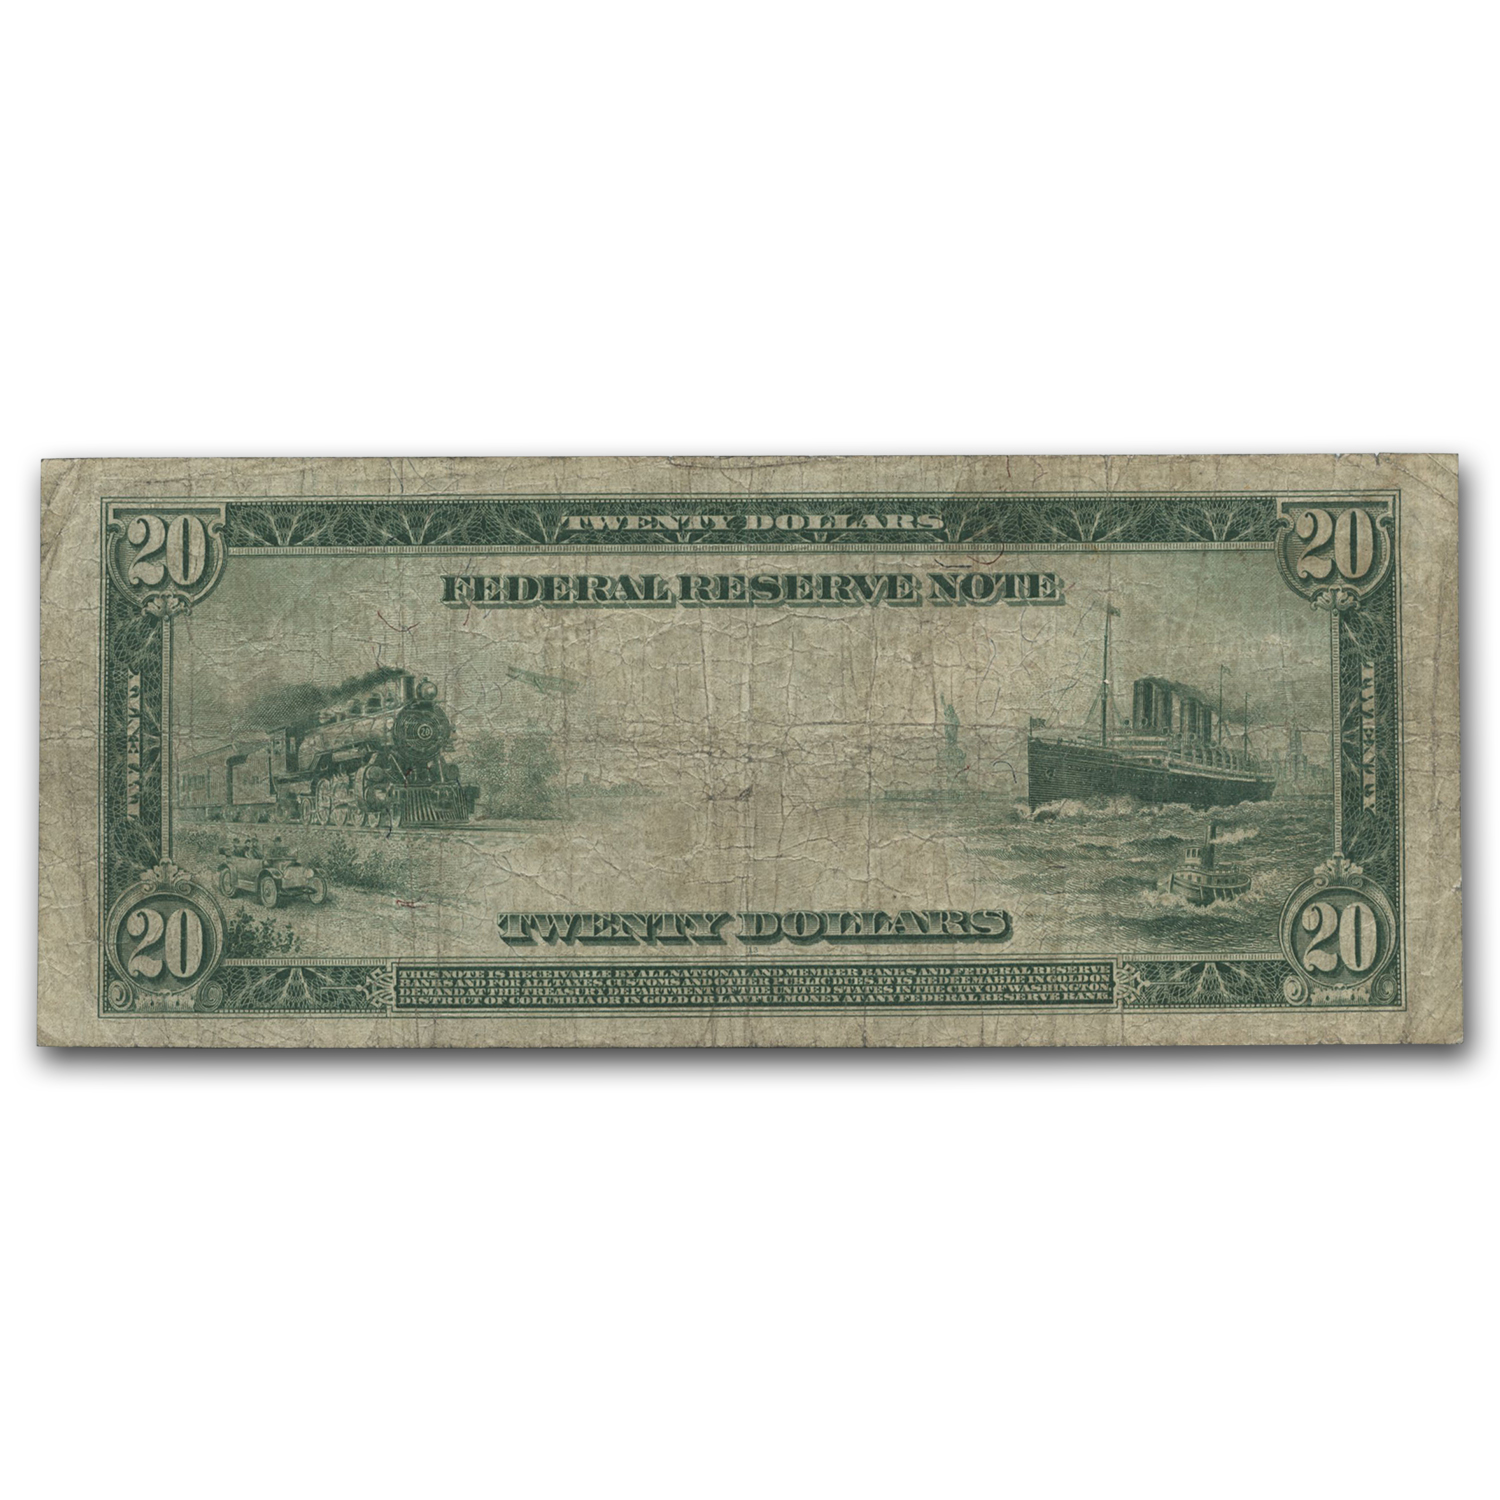 1914 (B-New York) $20 FRN Fine